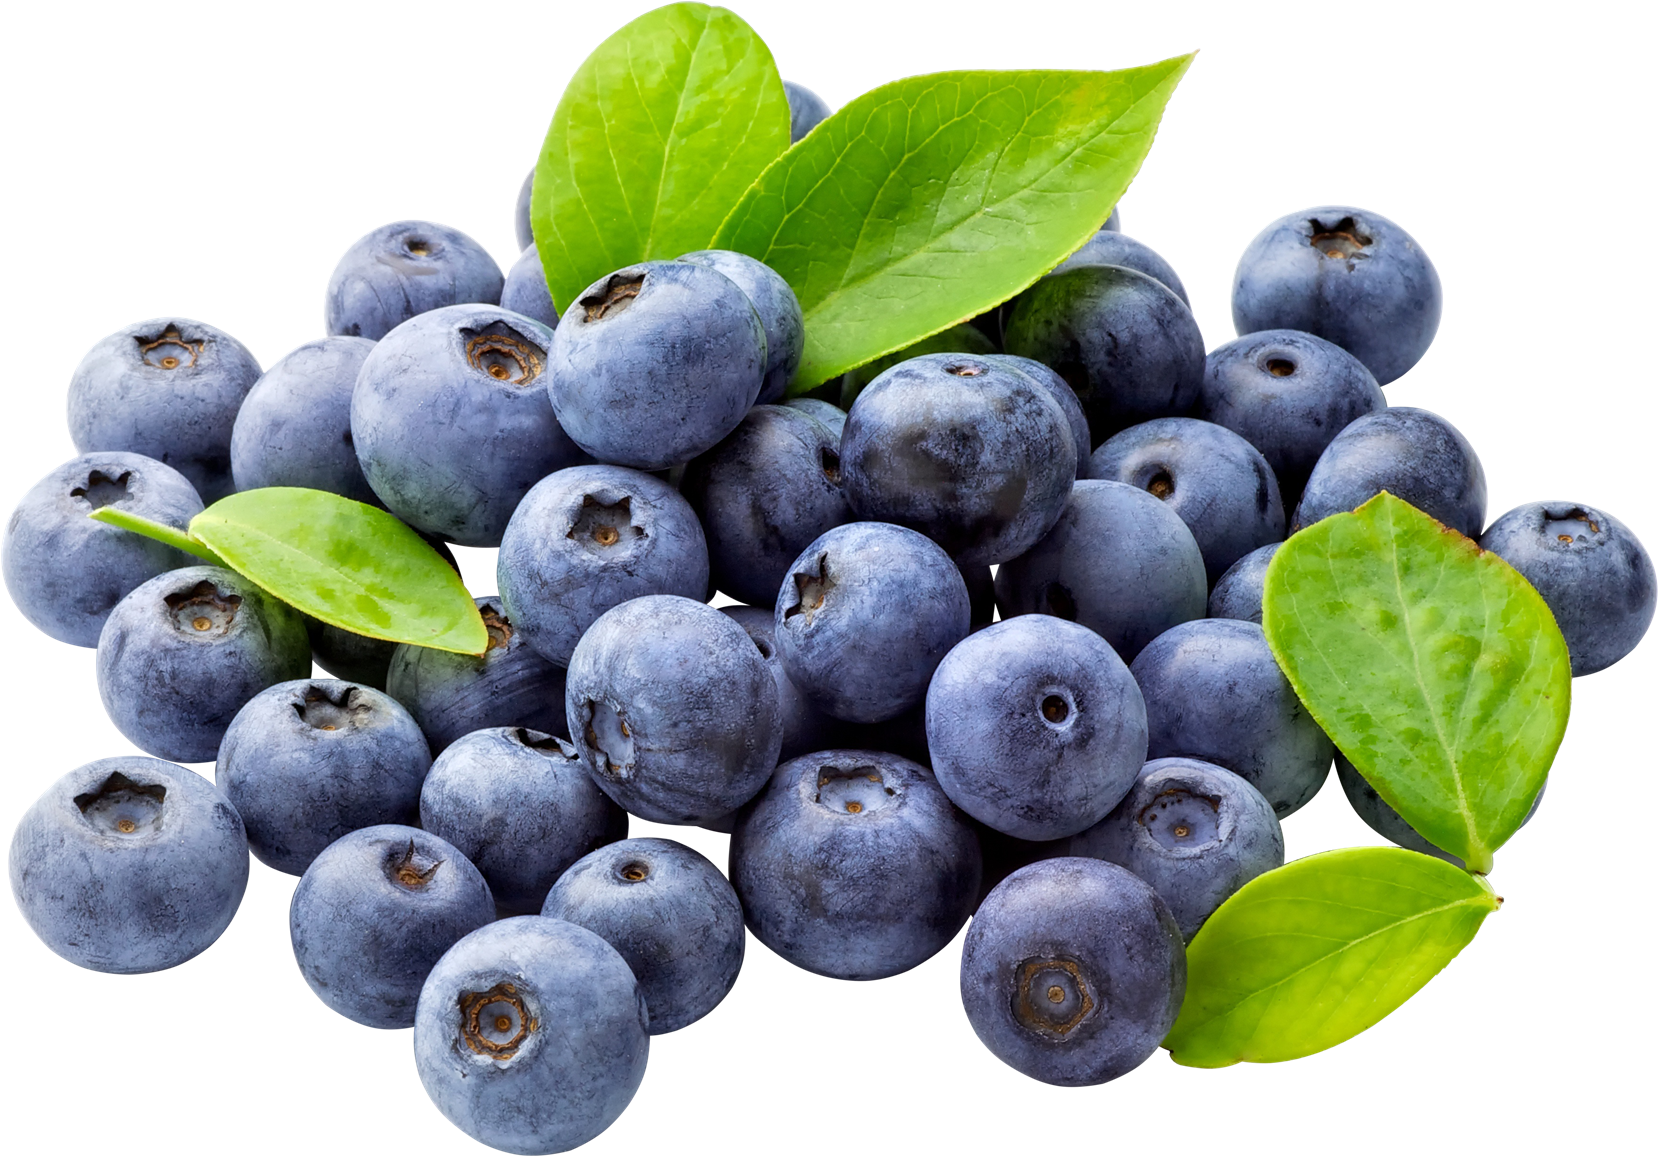 Download Blueberry PNG Free Download For Designing Projects.